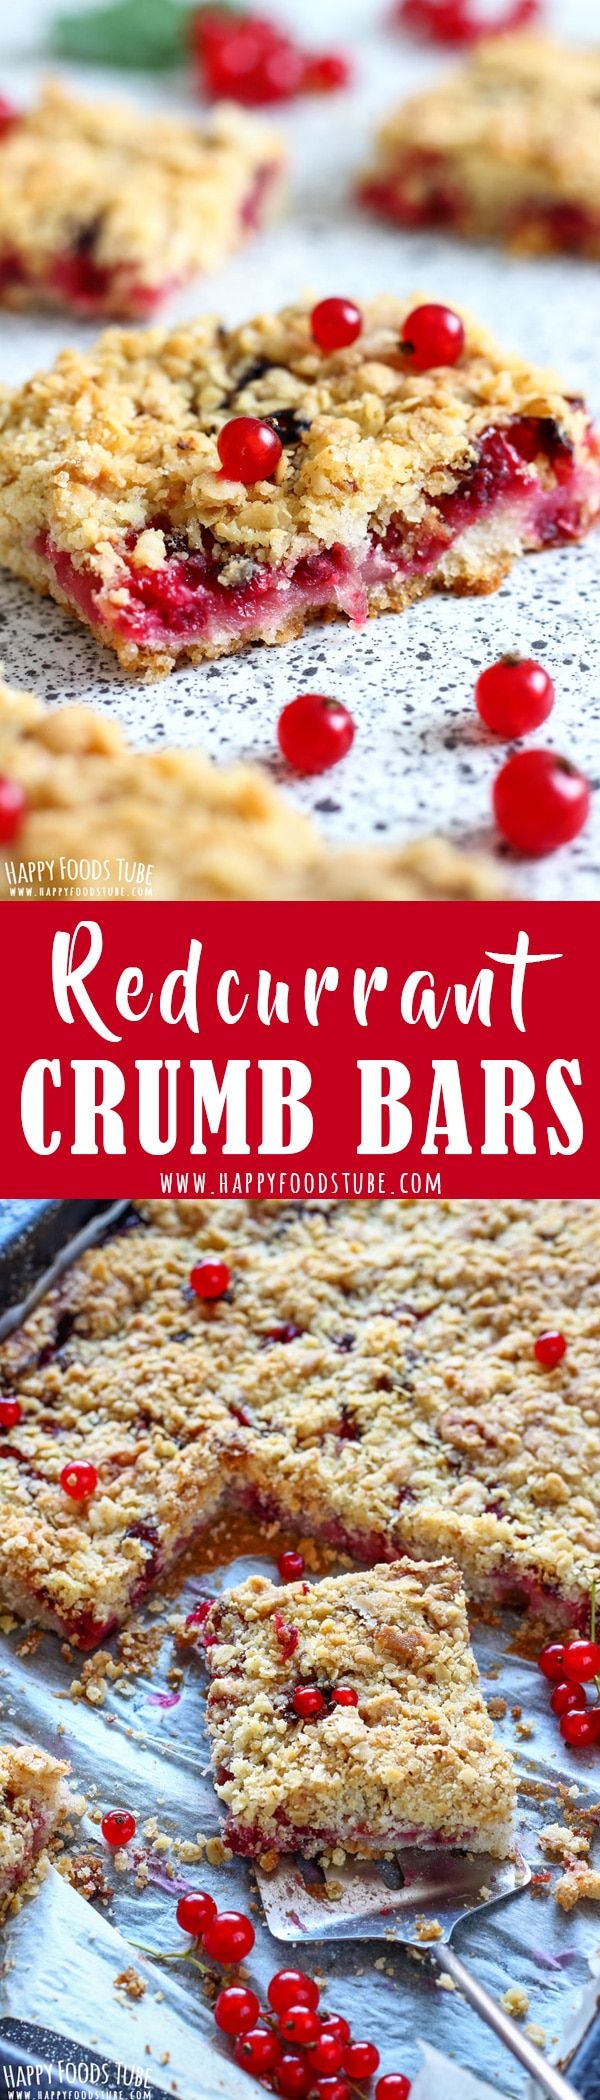 These redcurrant crumb bars will satisfy your sweet tooth. Oatmeal topping, juicy berry filling and sweet crust are turned into yummy homemade bars. Red currant dessert recipes